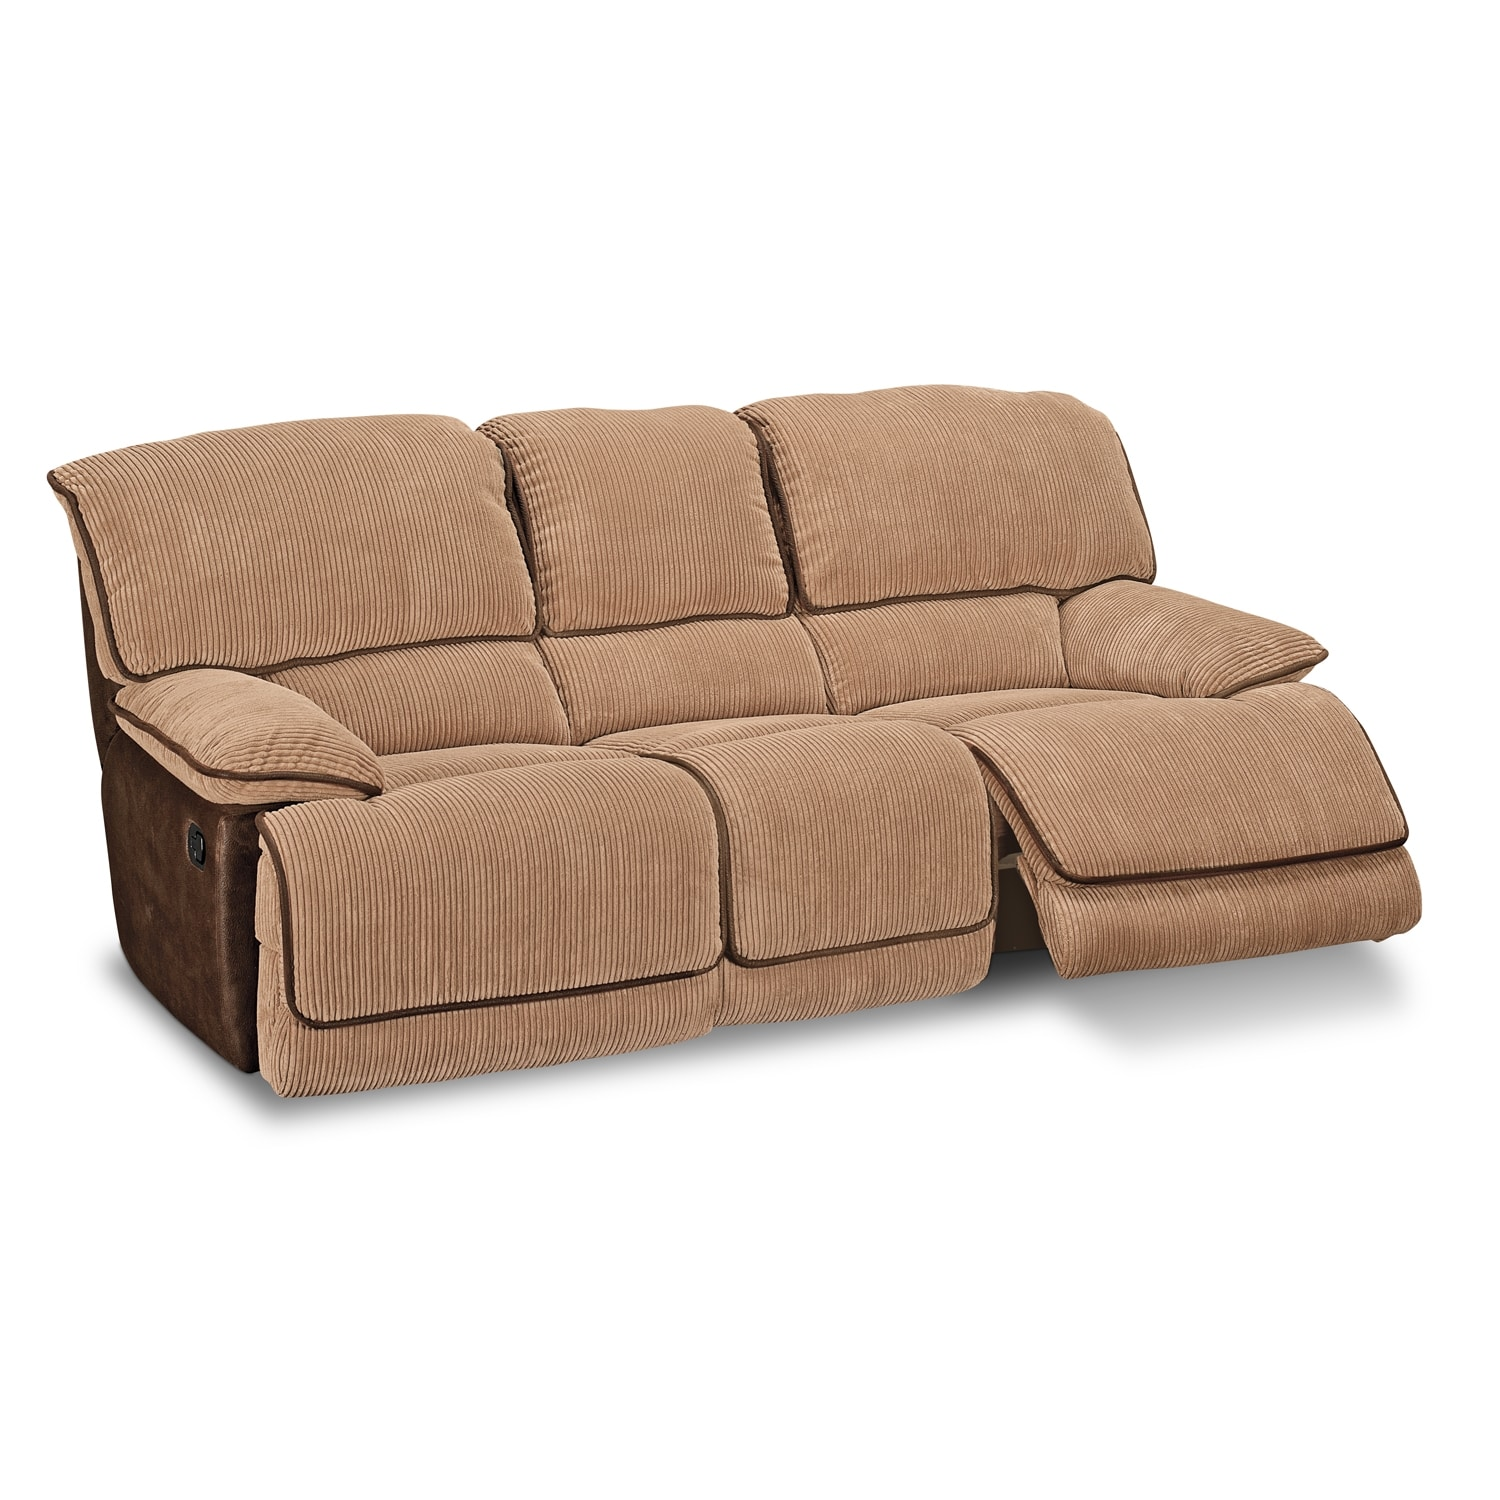 Laguna Dual Reclining Sofa Camel American Signature Furniture